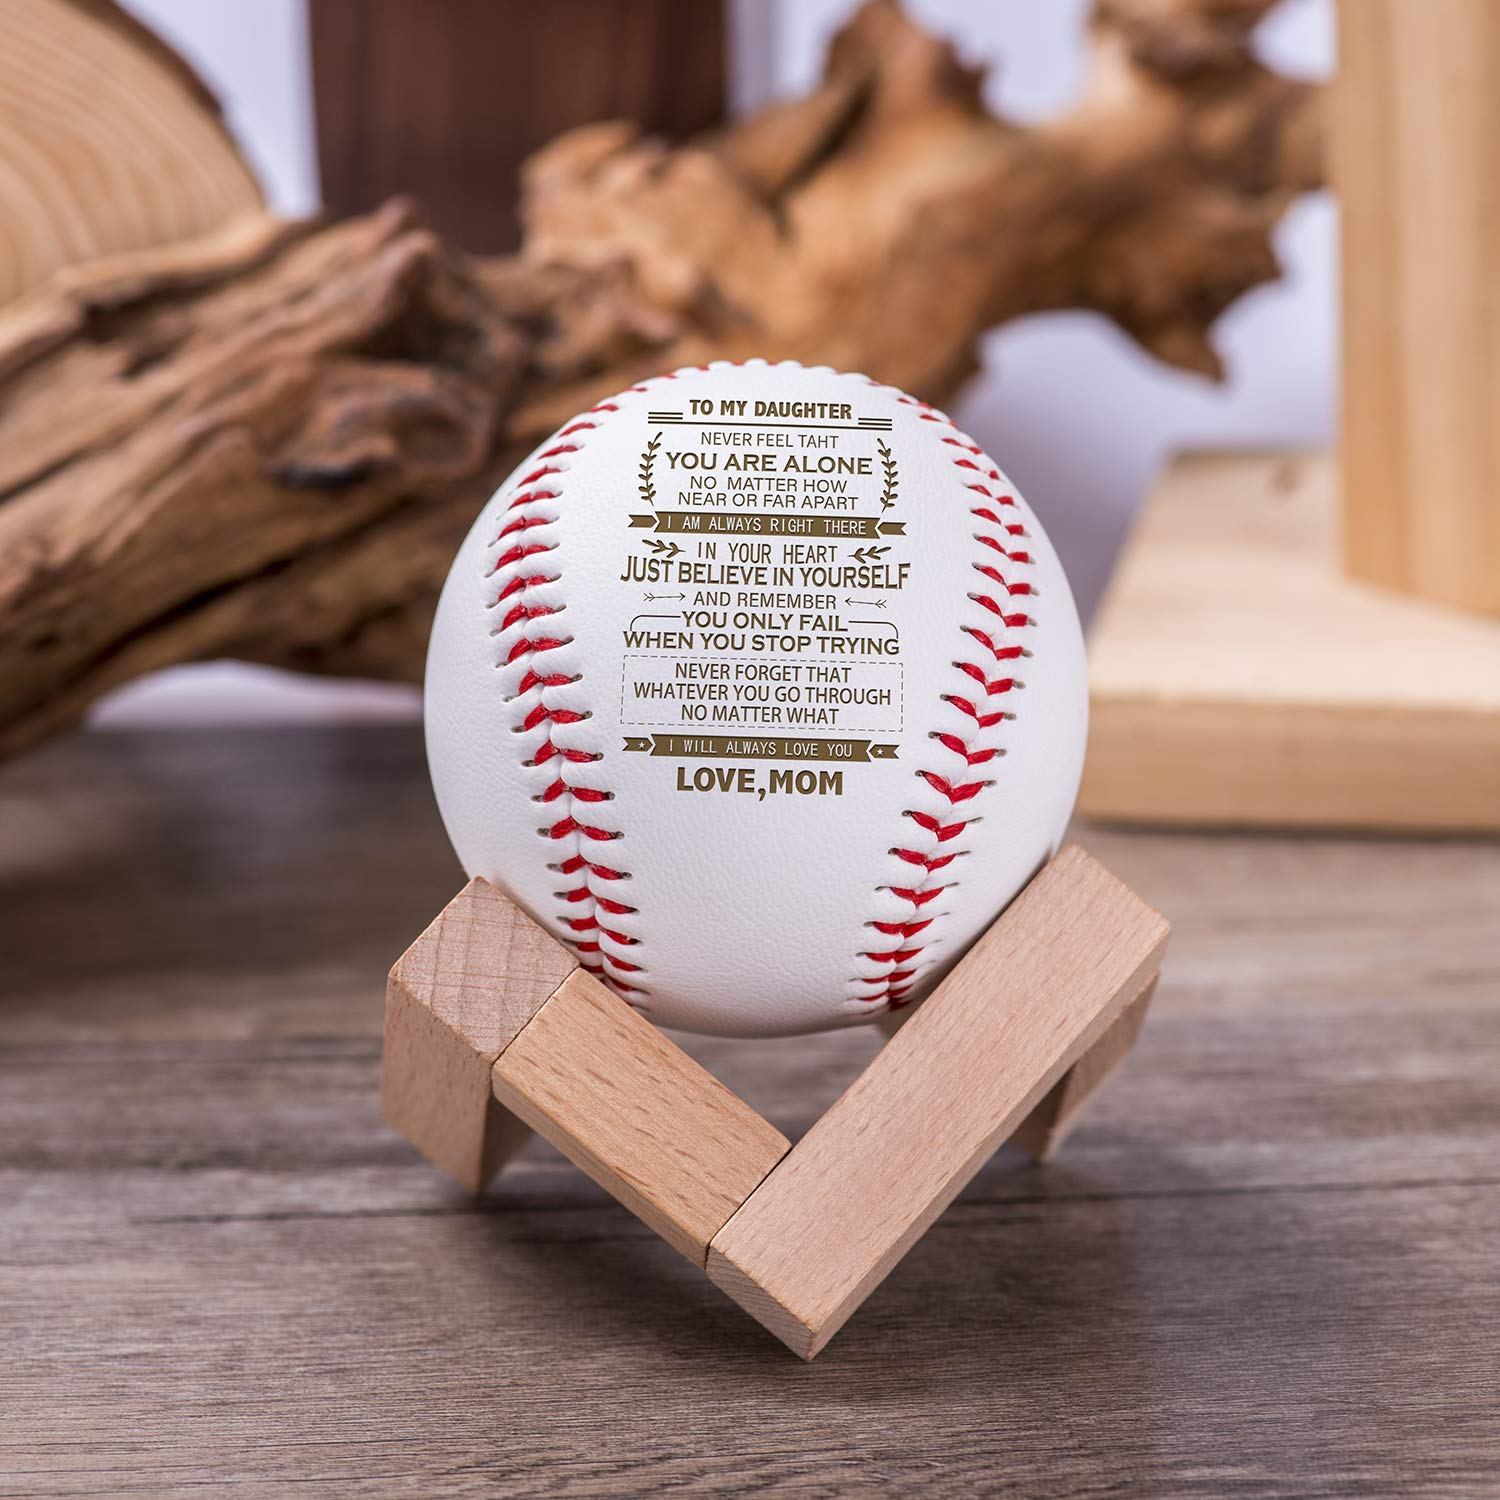 1-Pack WOODme Baseballs Low Impact Safety Balls Competition Grade Youth Personalized Carving Baseballs Recreational Use Baseballs for Indoor Baseball and Outdoor Baseball with Beautiful Box